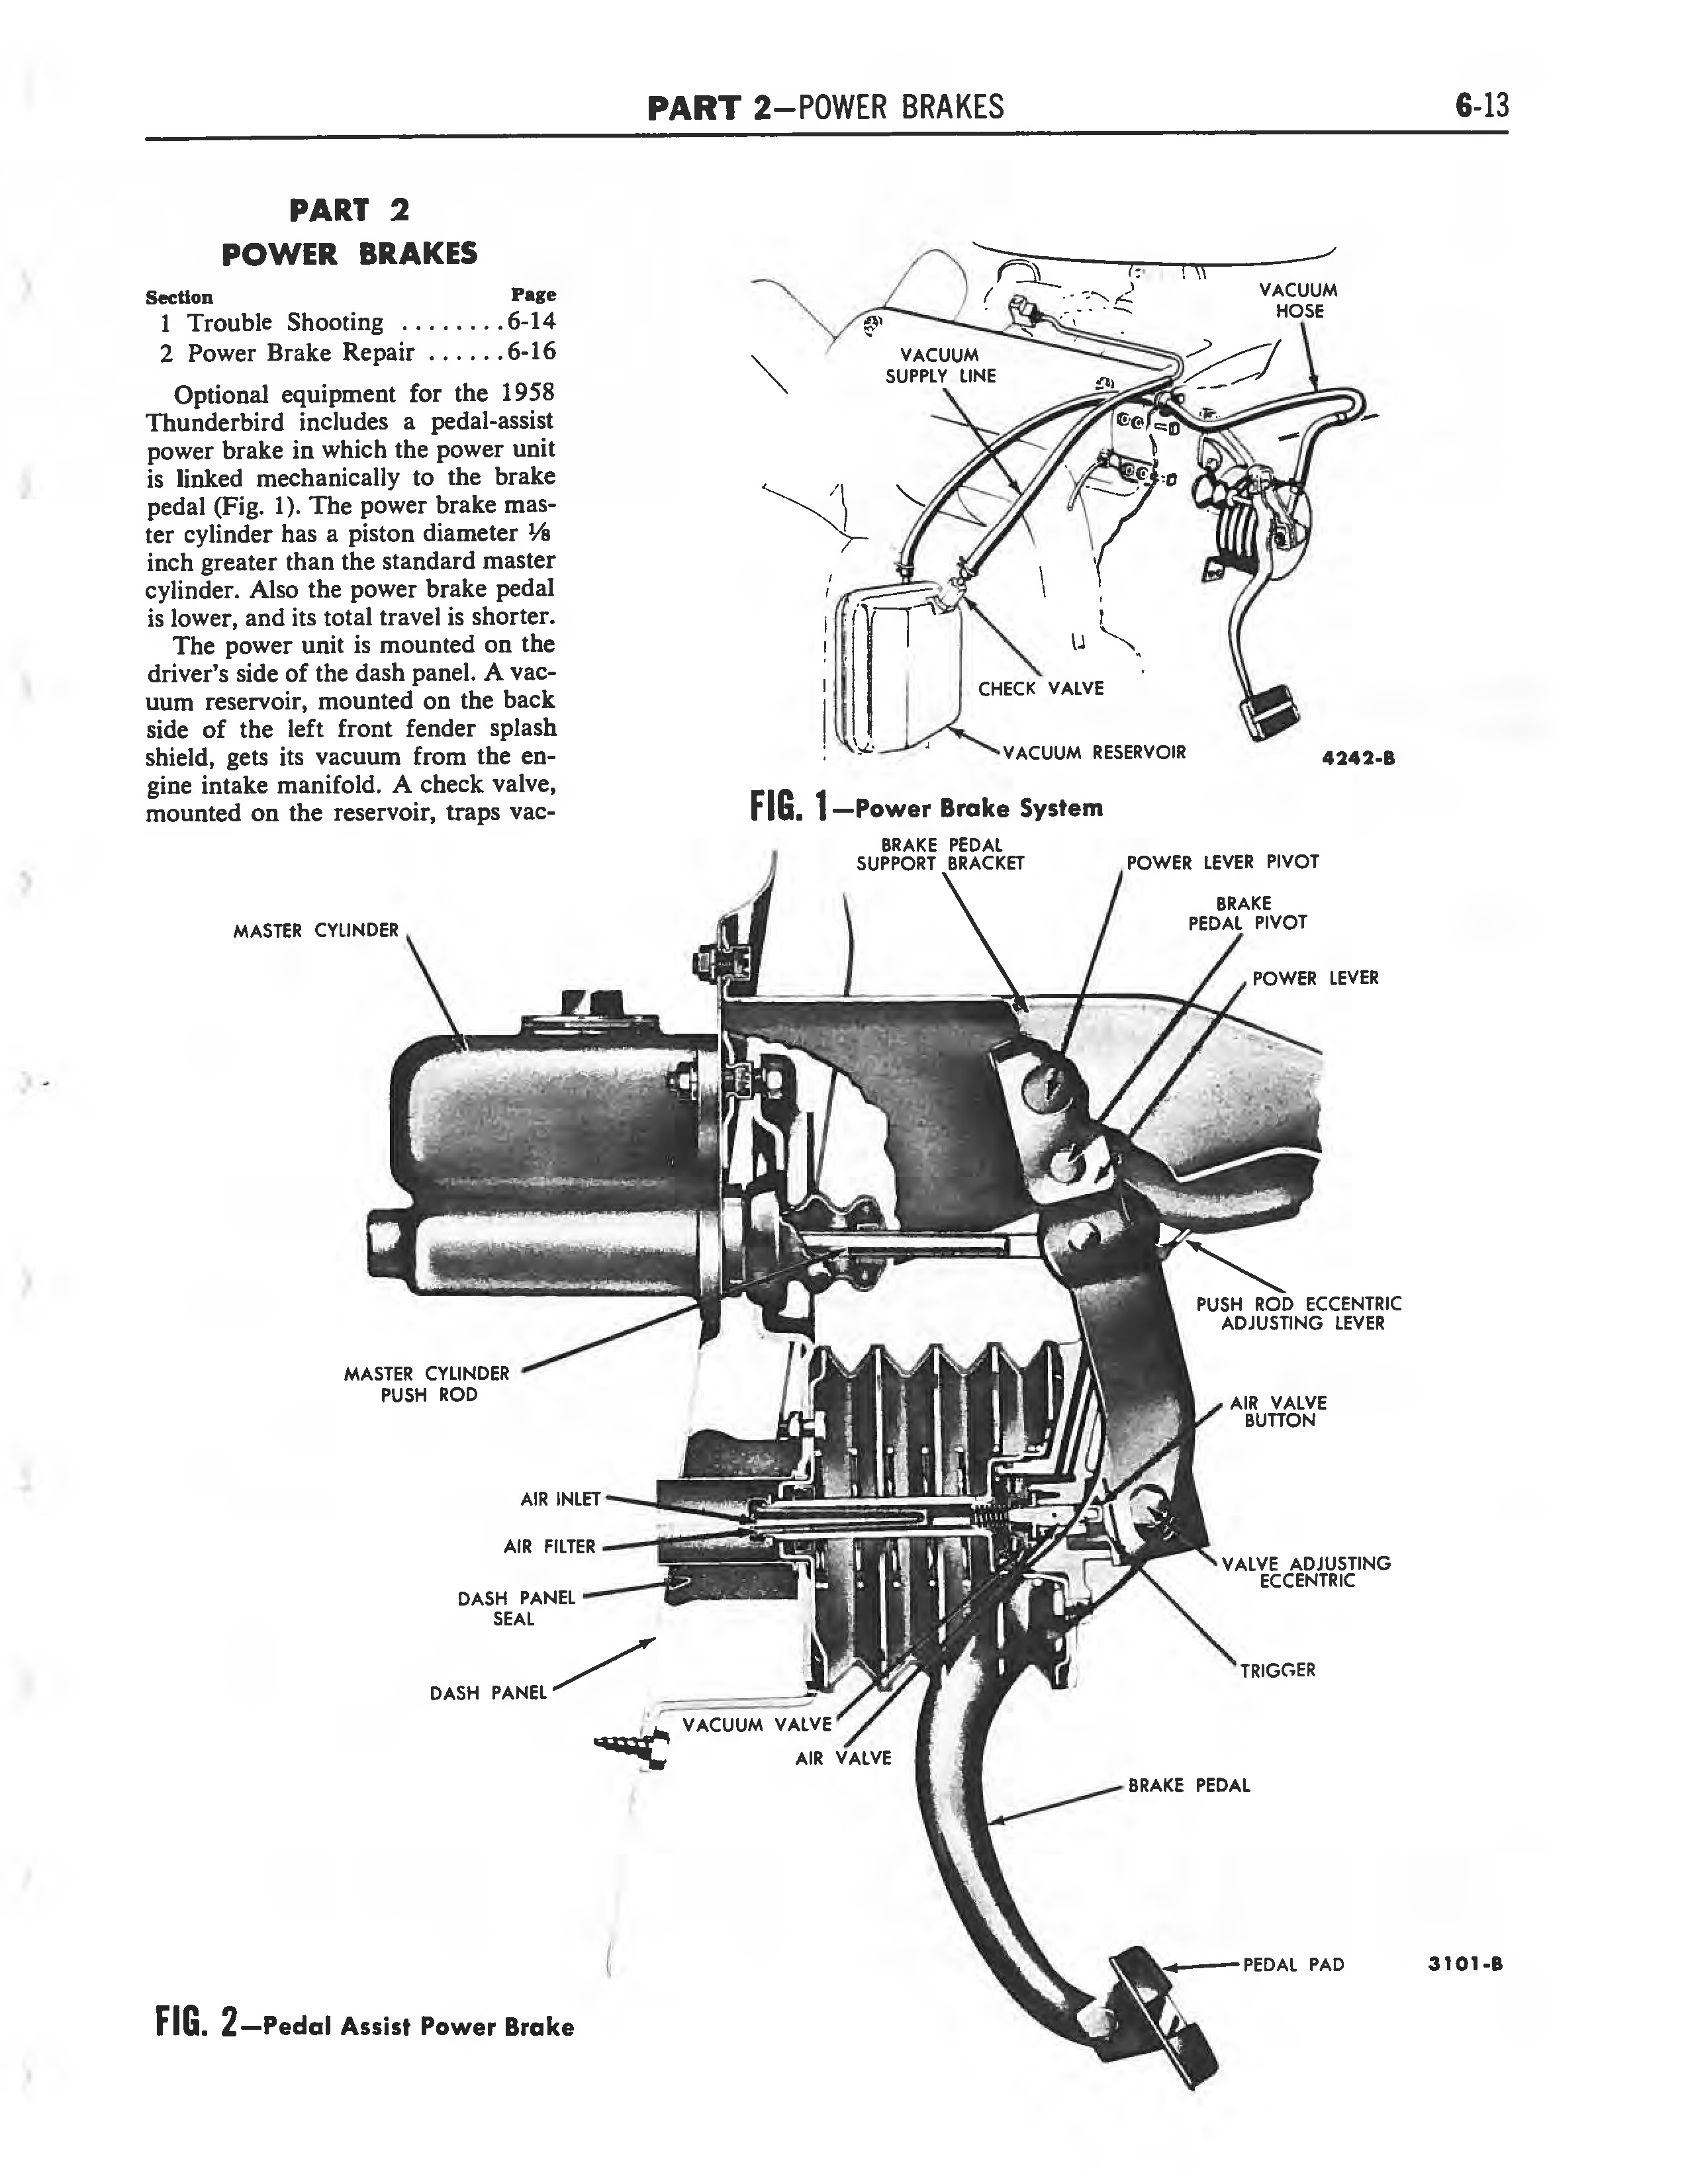 1958 Ford Thunderbird Shop Manual page 233 of 360